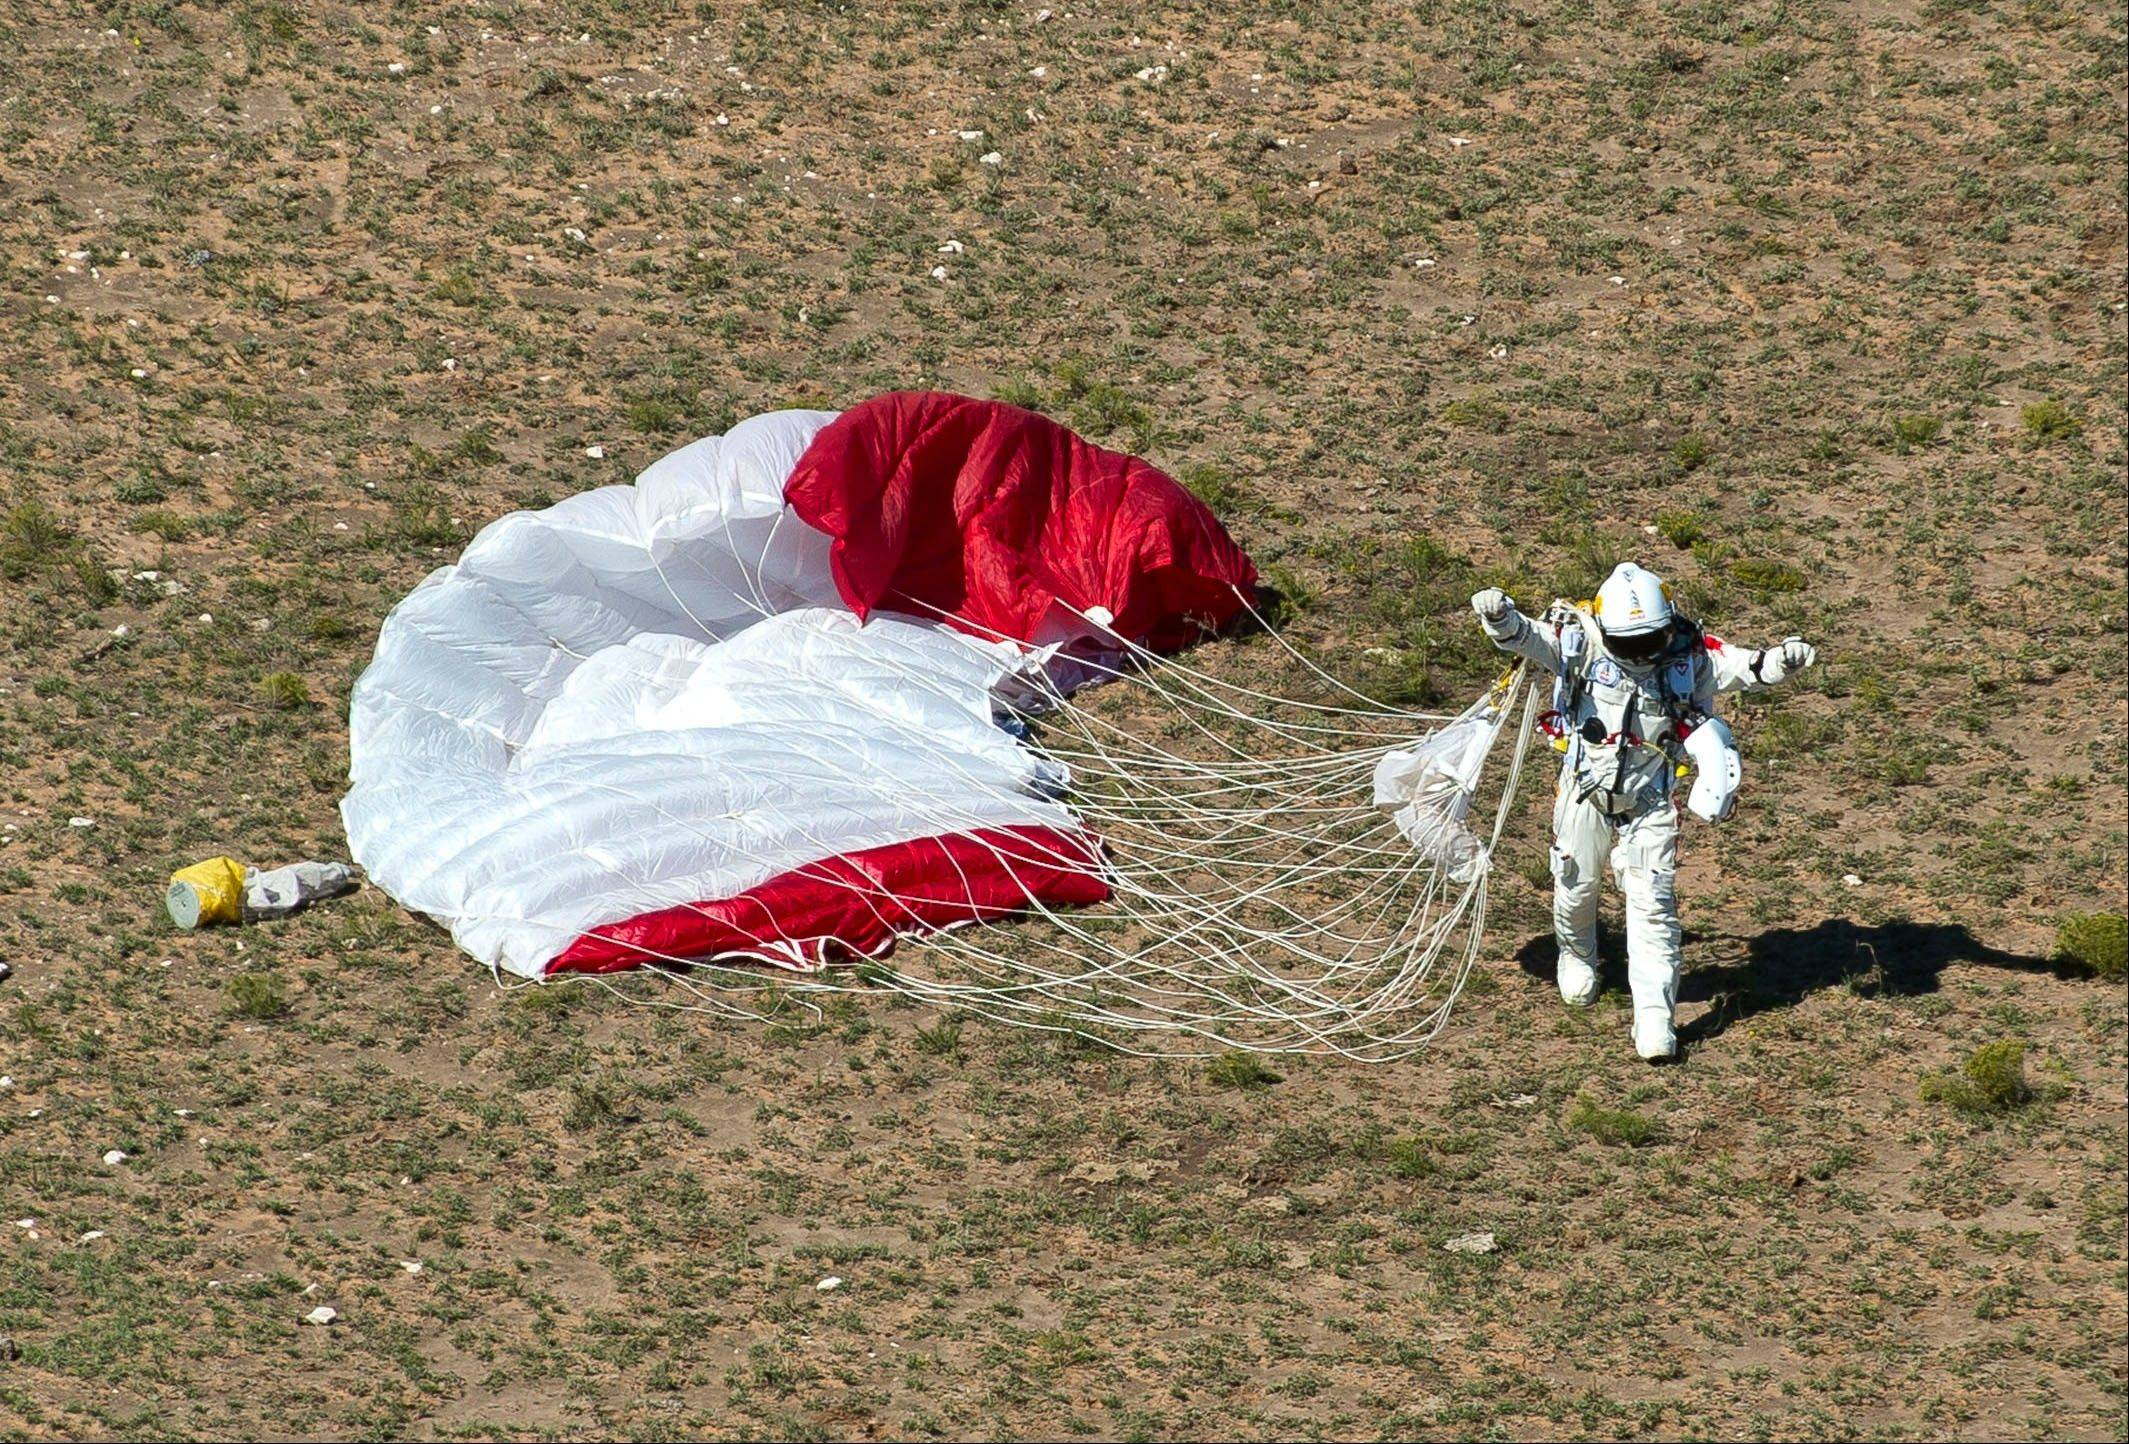 In this photo provided by Red Bull, pilot Felix Baumgartner of Austria celebrates after his successful jump on Sunday, Oct. 14, 2012 in Roswell, N.M. Baumgartner came down safely in the eastern New Mexico desert minutes about nine minutes after jumping from his capsule 128,097 feet, or roughly 24 miles, above Earth.